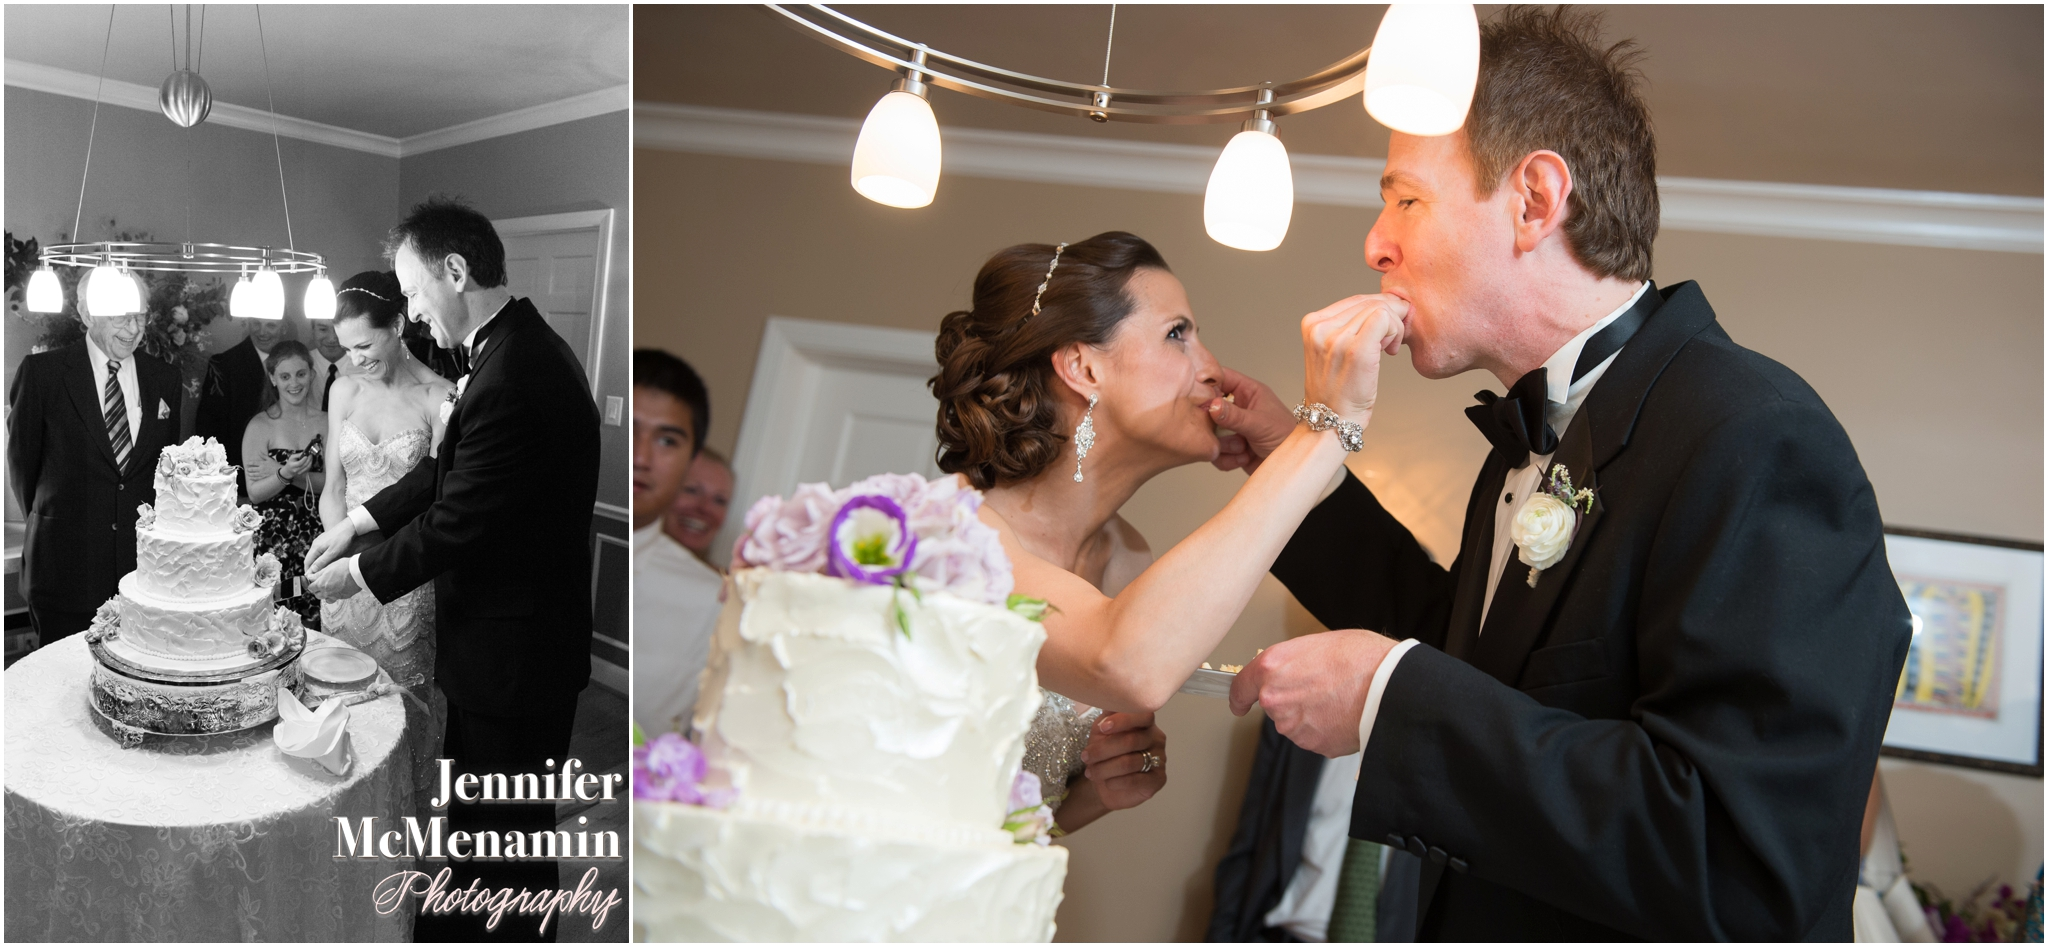 054-CoughlinPomper_02886-0580_JenniferMcMenaminPhotography_Private-Residence-Roland-Park_Baltimore-Wedding-Photography